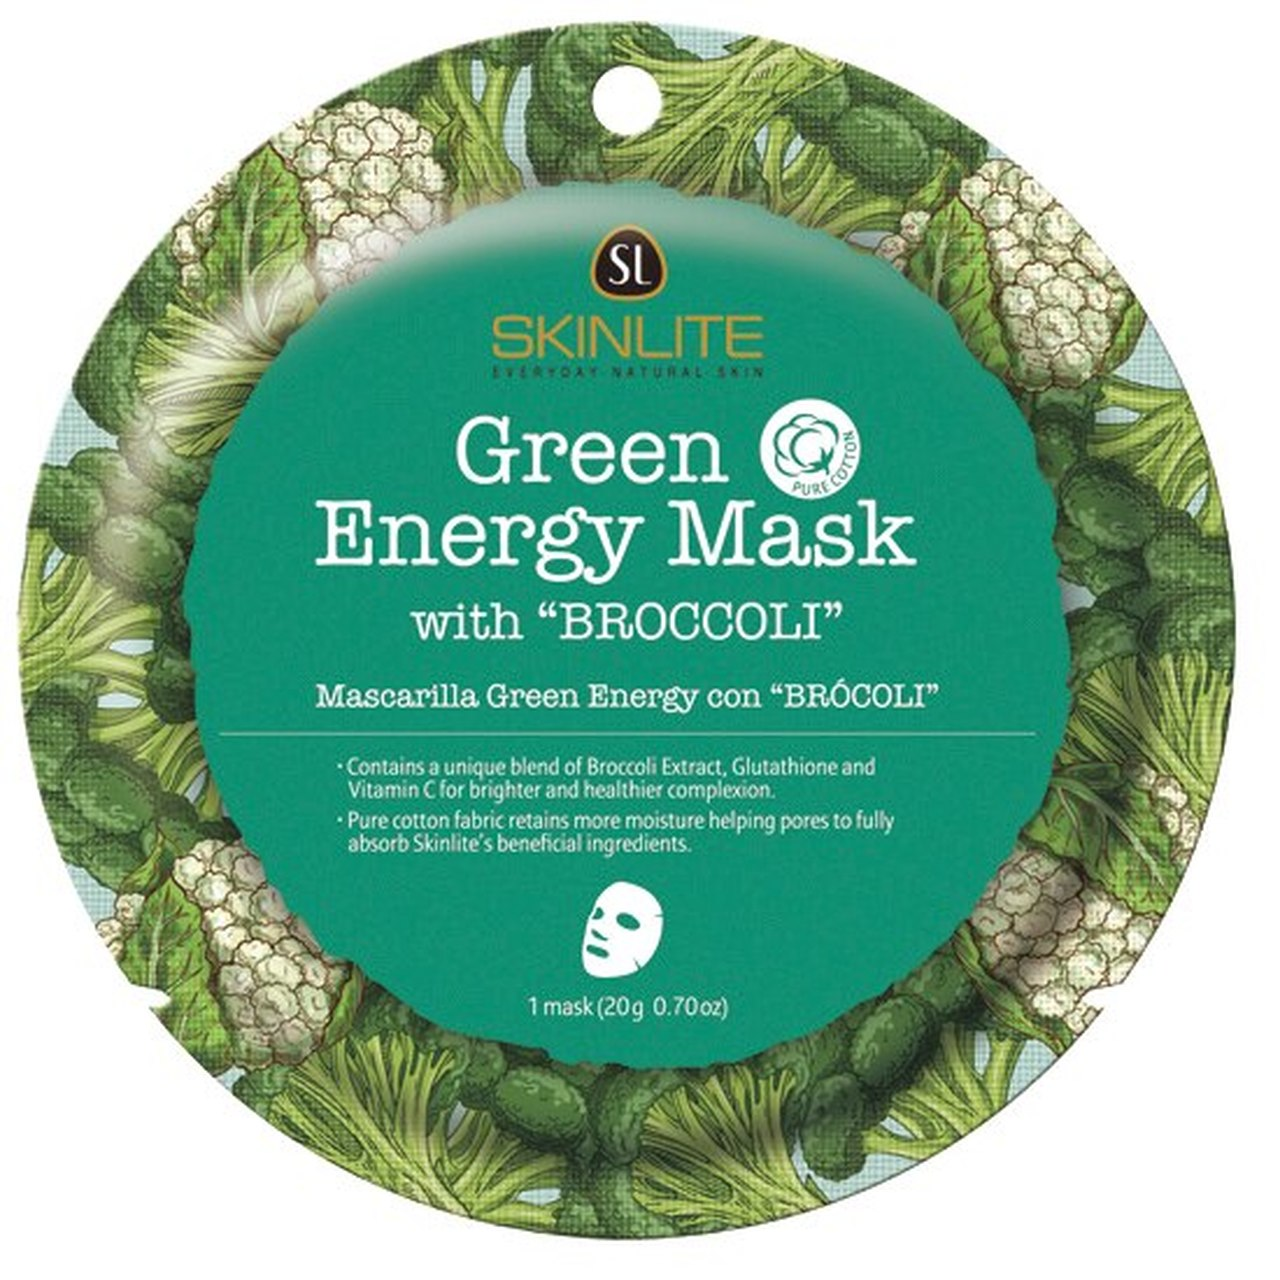 SKINLITE - Green Energy Mask with Broccoli